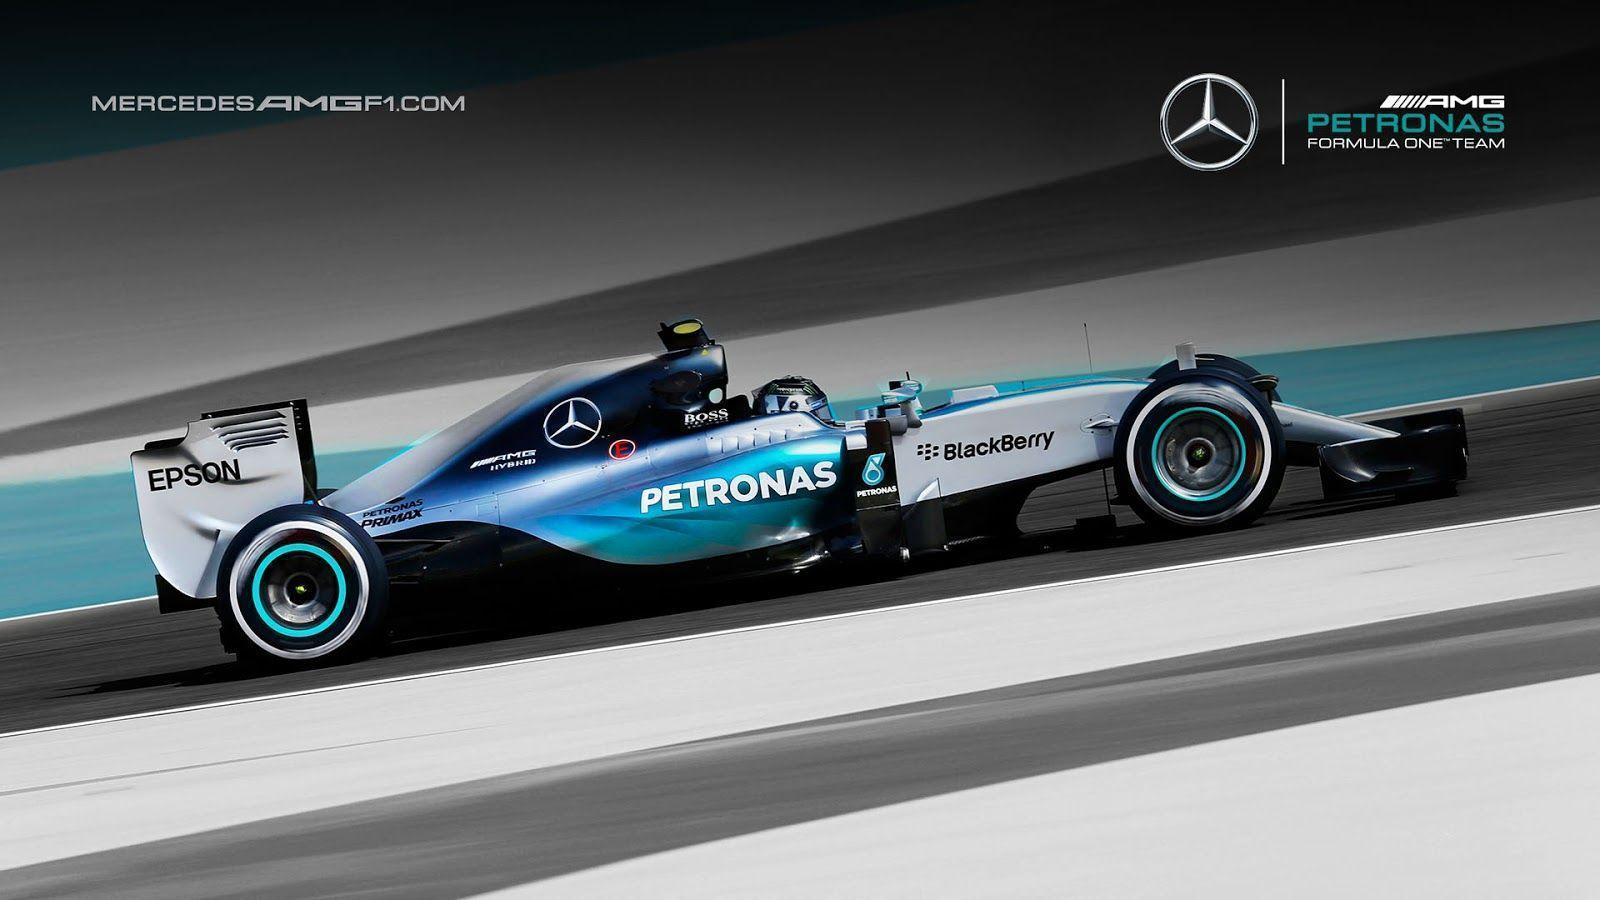 Car 1440p Phone Wallpaper Mercedes W08 Wallpapers Wallpaper Cave